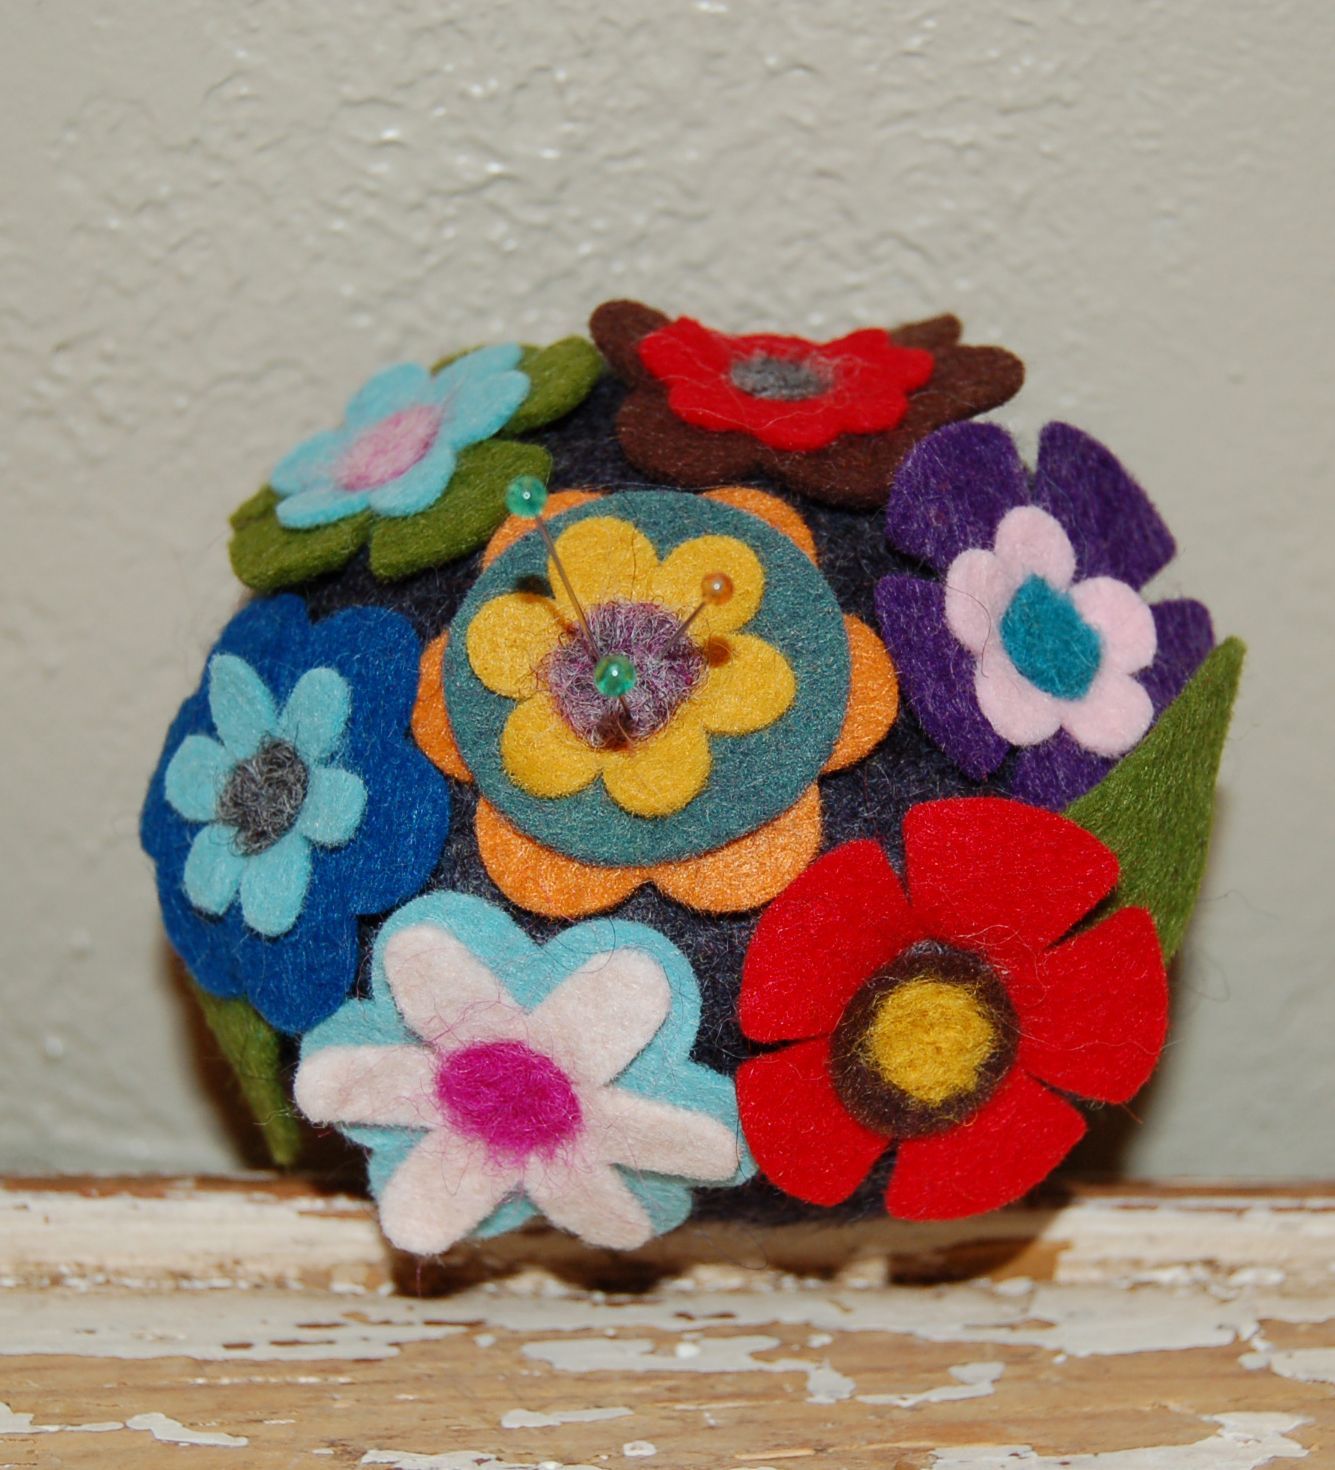 Felt Flower Pincushion